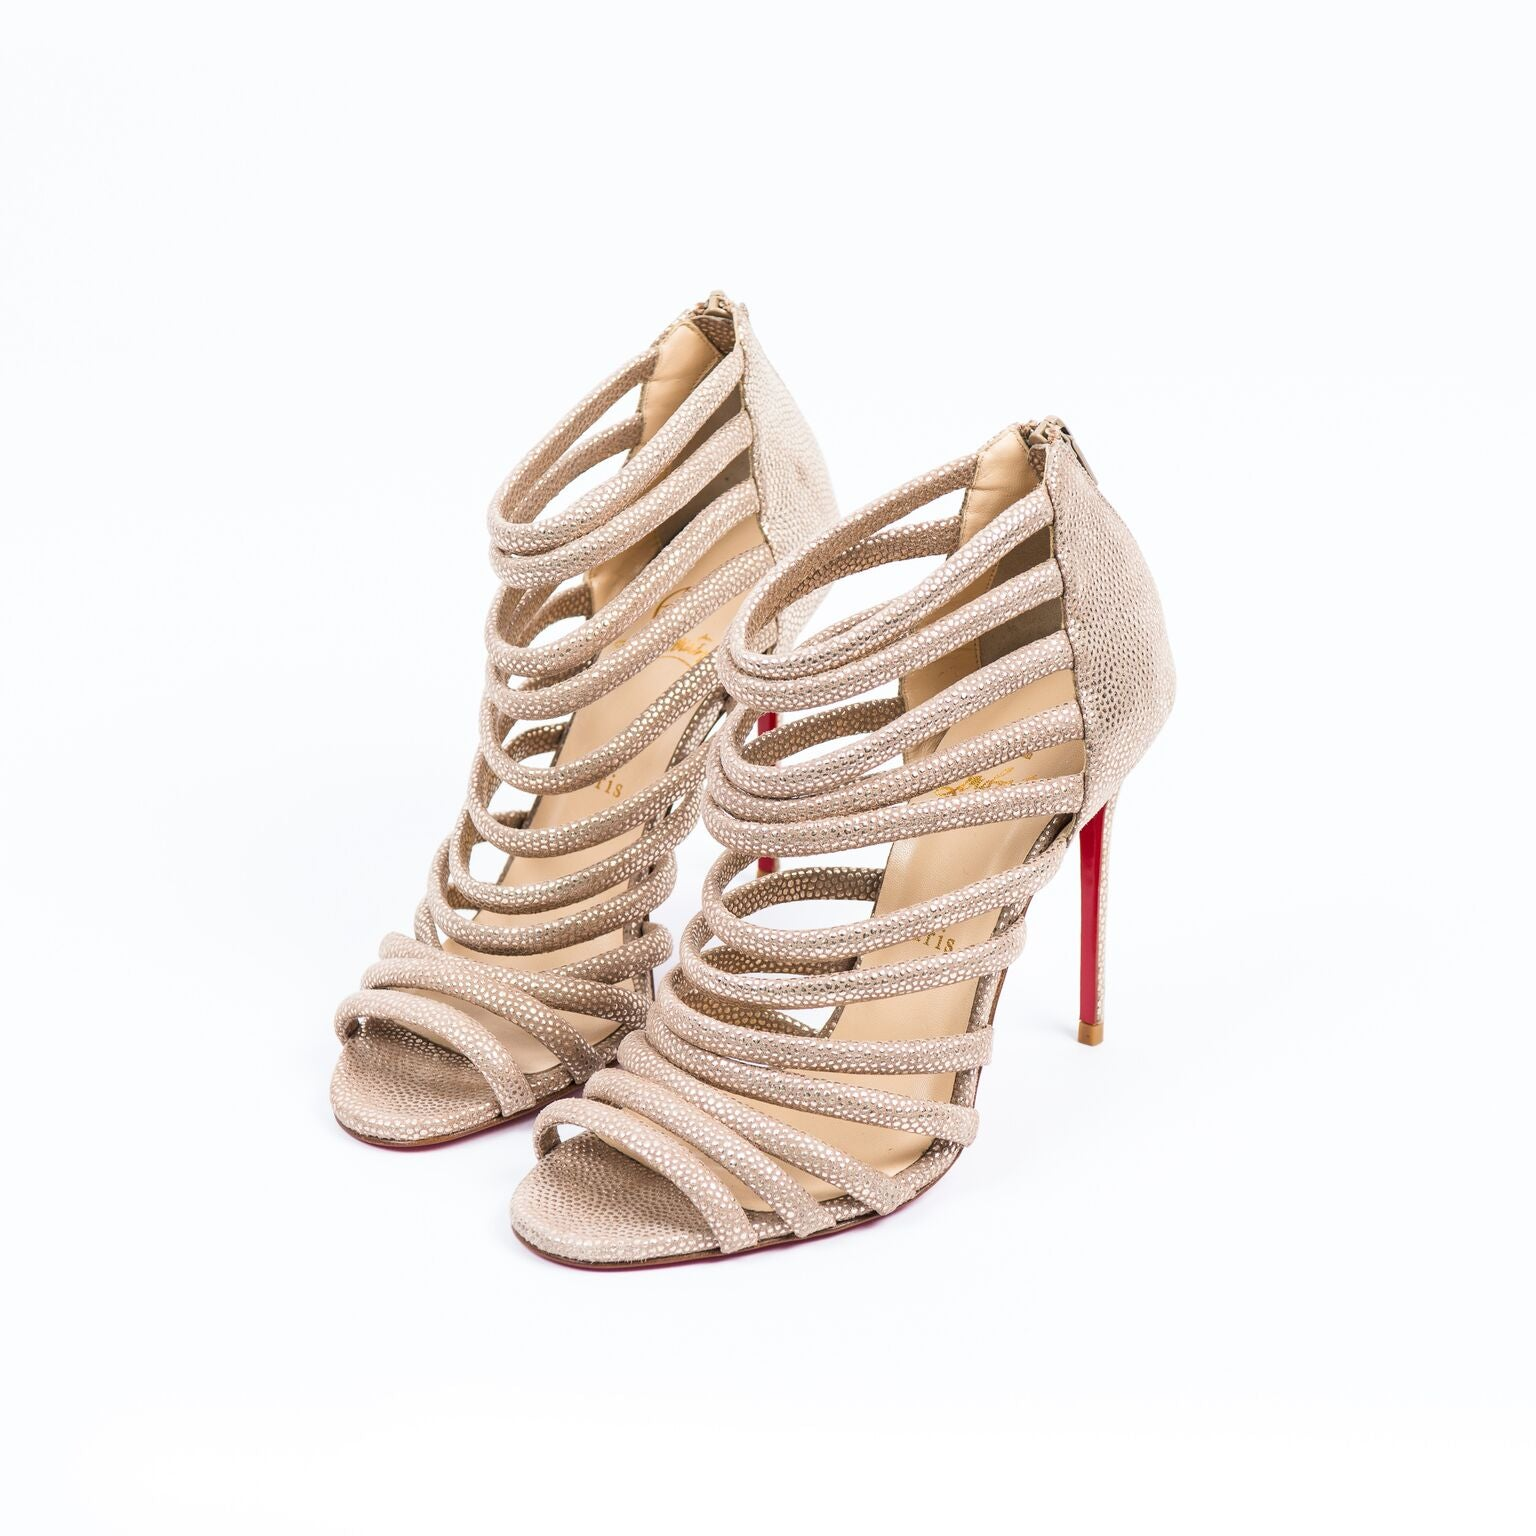 0f2d9fc91f8 Buy christian louboutin caged nude metallic sandals online at best jpg  1536x1536 Caged christian louboutin strappy